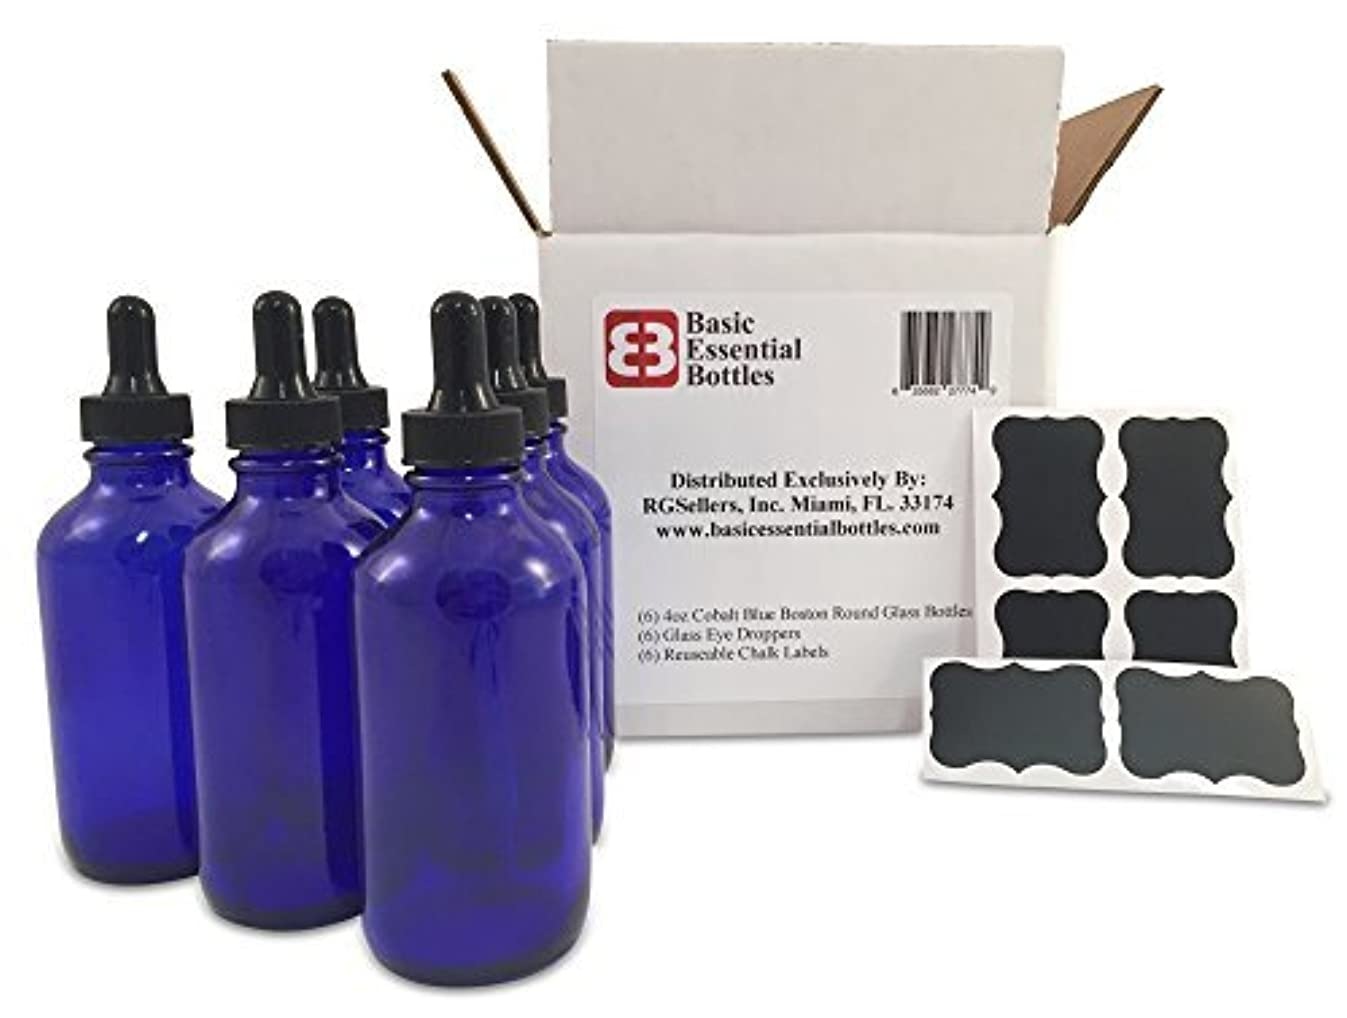 (6) 4 oz Empty Cobalt Blue Glass Bottles W/Glass Eye Droppers and (6) Chalk Labels for Essential Oils, Aromatherapy...